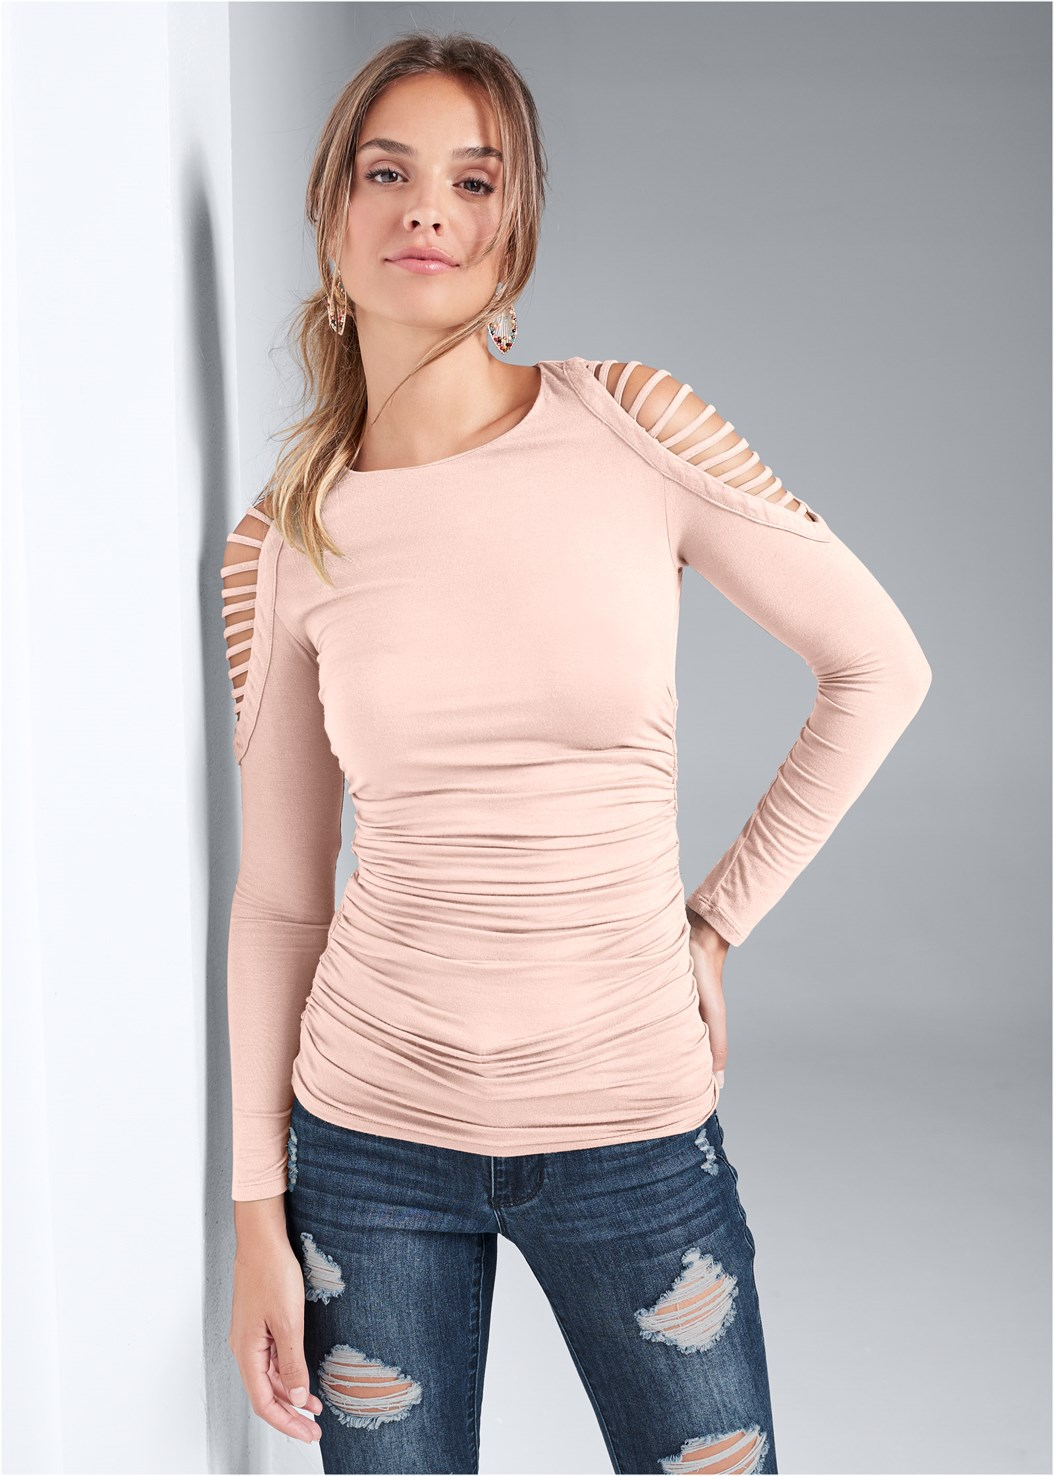 Cut Out Cold Shoulder Top,Ripped Bum Lifter Jeans,Mid Rise Color Skinny Jeans,Naked T-Shirt Bra,Peep Toe Booties,Beaded Leaf Shape Earrings